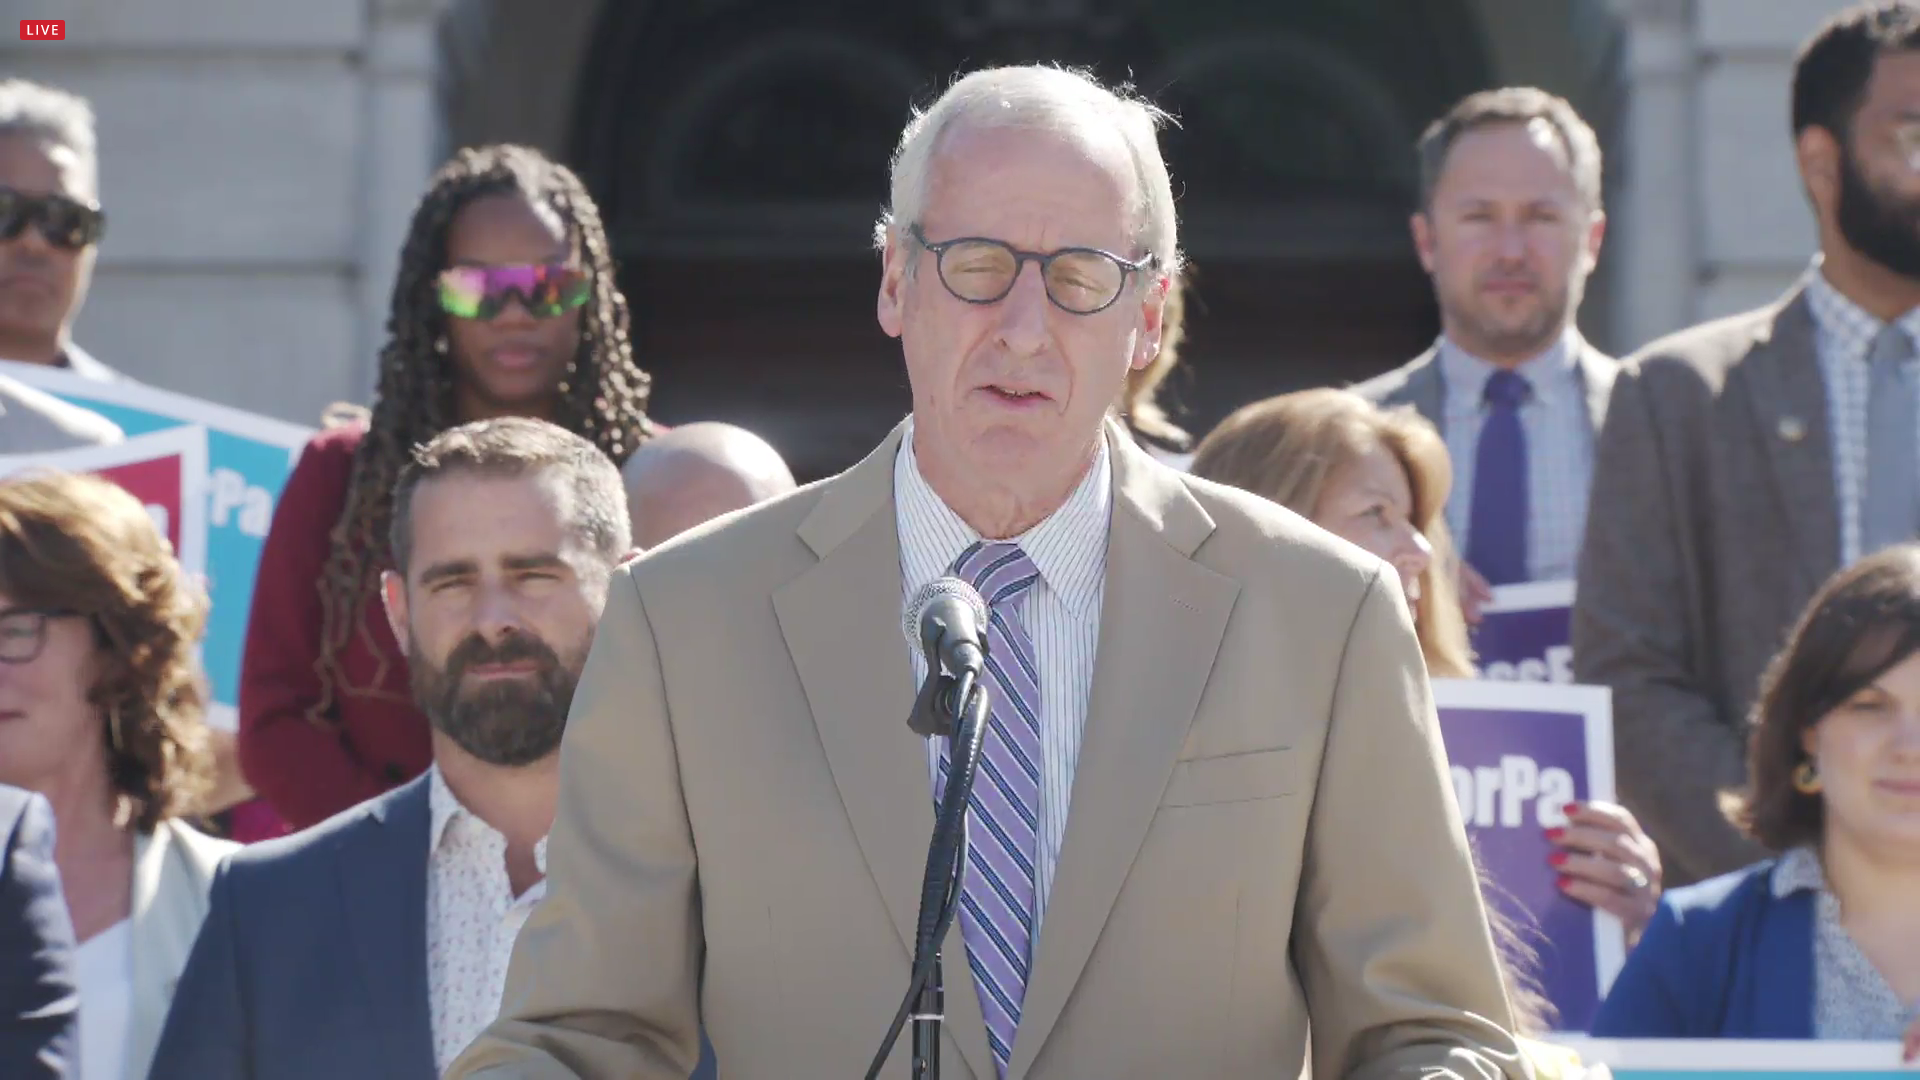 Pa. Rep. Dan Frankel, D-Allegheny, speaks about the Fairness Act during a news conference at the state Capitol on Tuesday, June 15, 2021. (Source: Pa.gov)